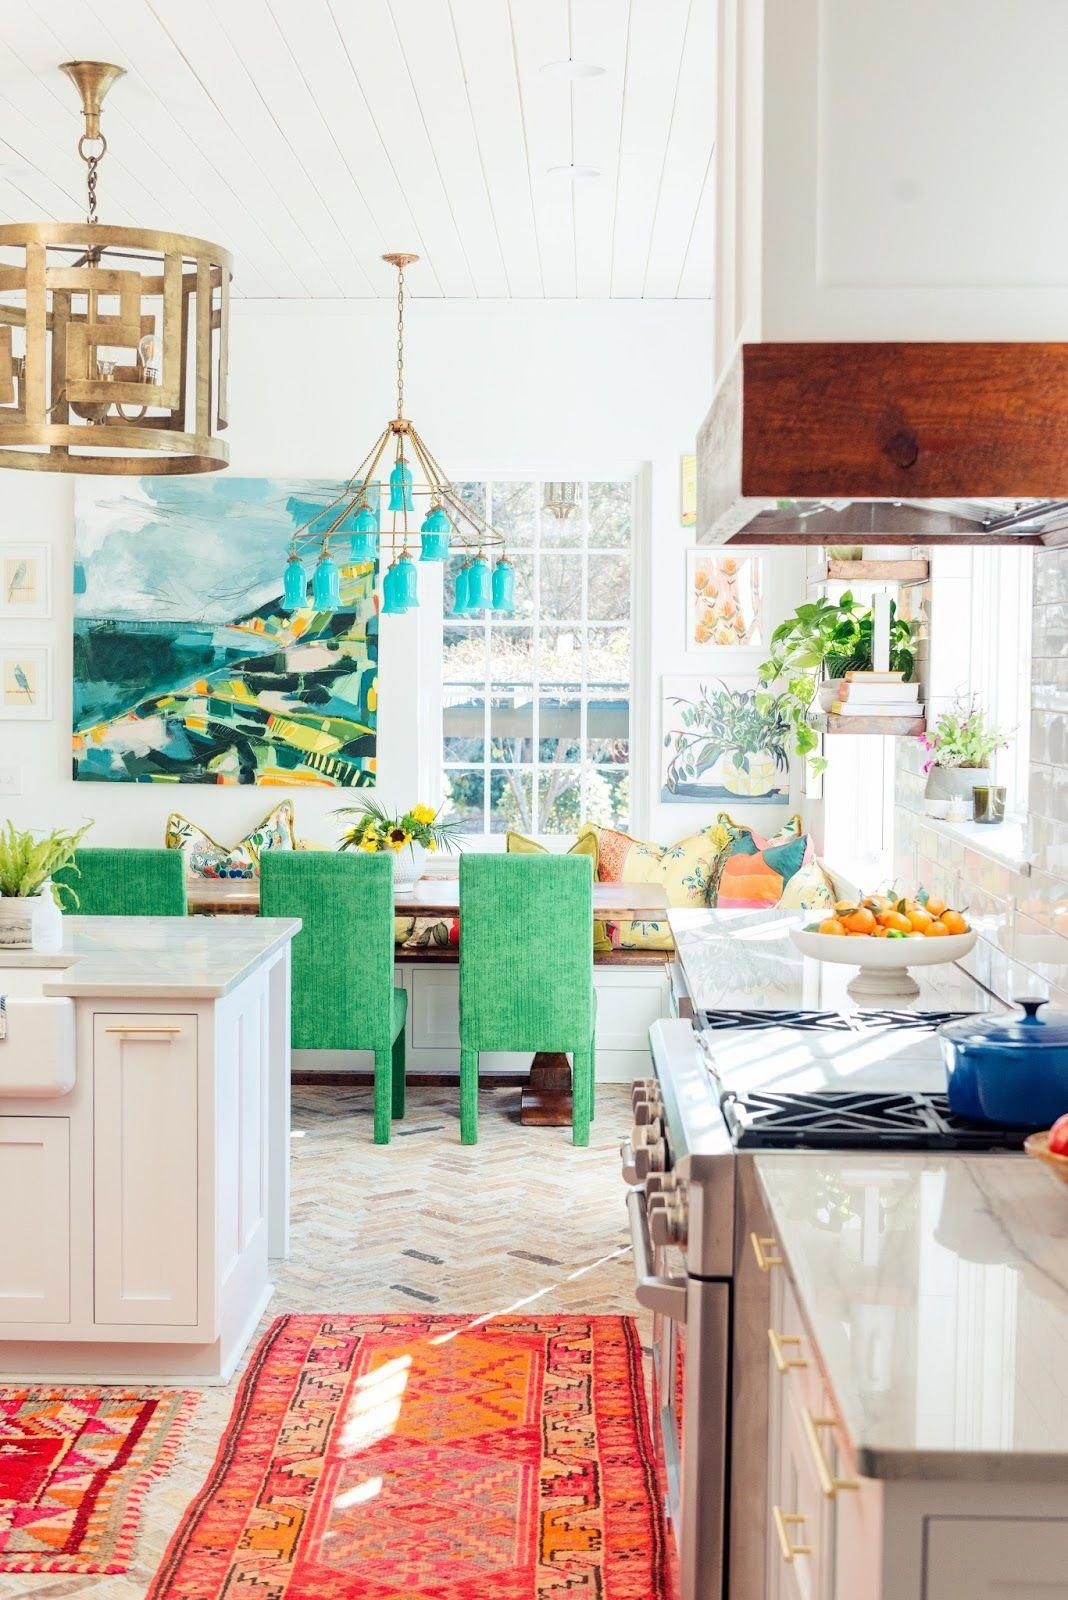 easy being green amanda louise interiors tophomeinteriors with images modern kitchen on kitchen interior green id=63859